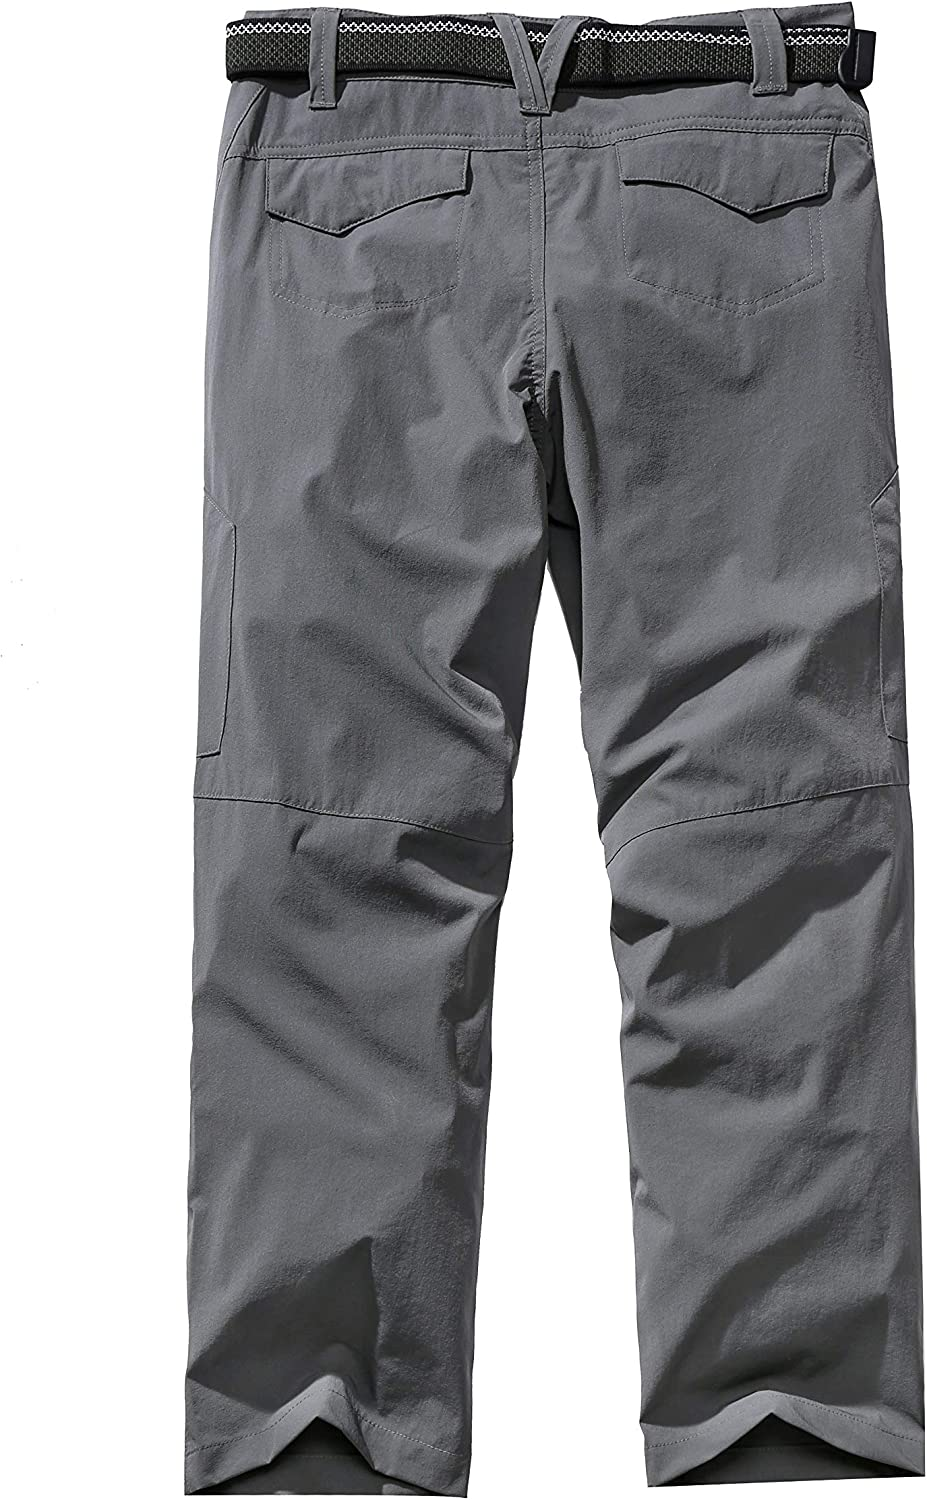 Cargo Trousers Kids Boys Girls Pants Youth Hiking Convertible Quick Dry Zip Off Stretch UPF 50